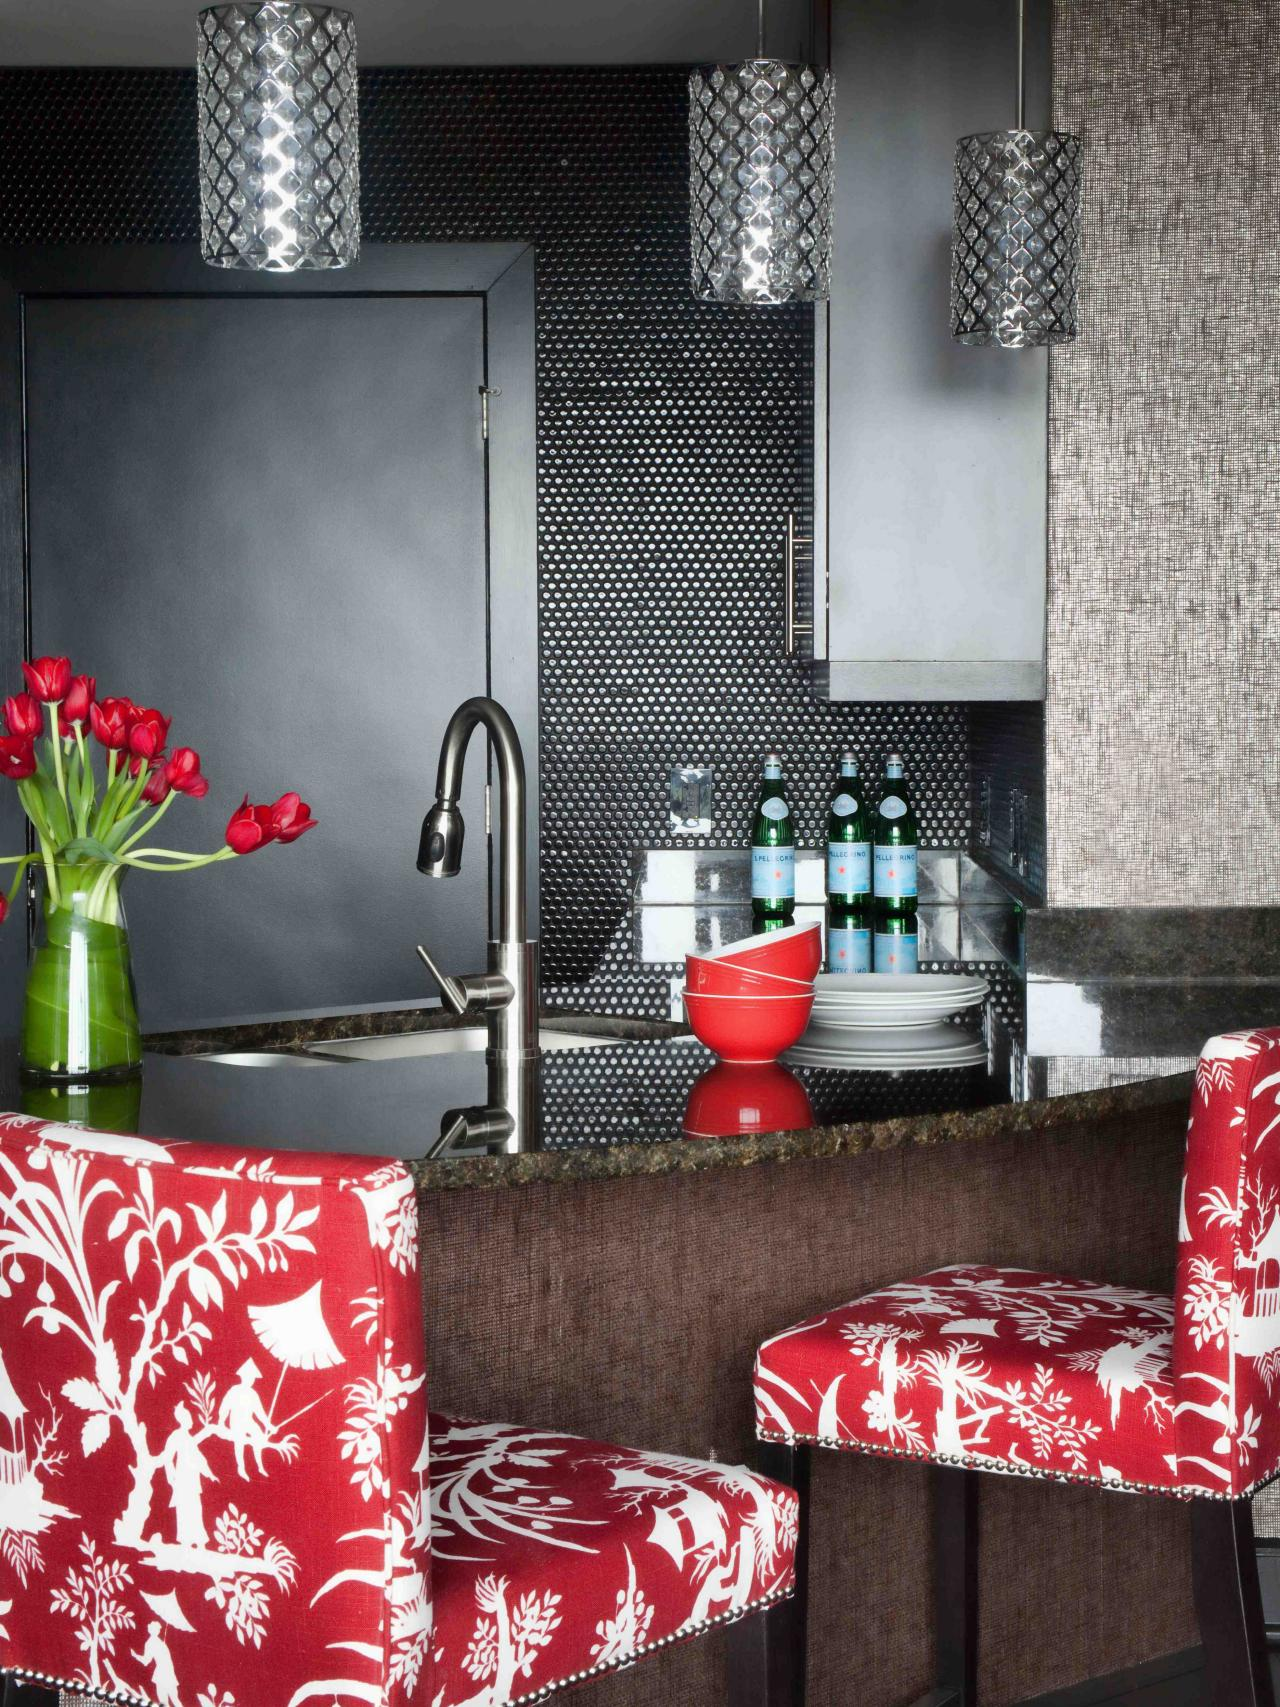 Glass Tile Backsplash Ideas & Tips From HGTV